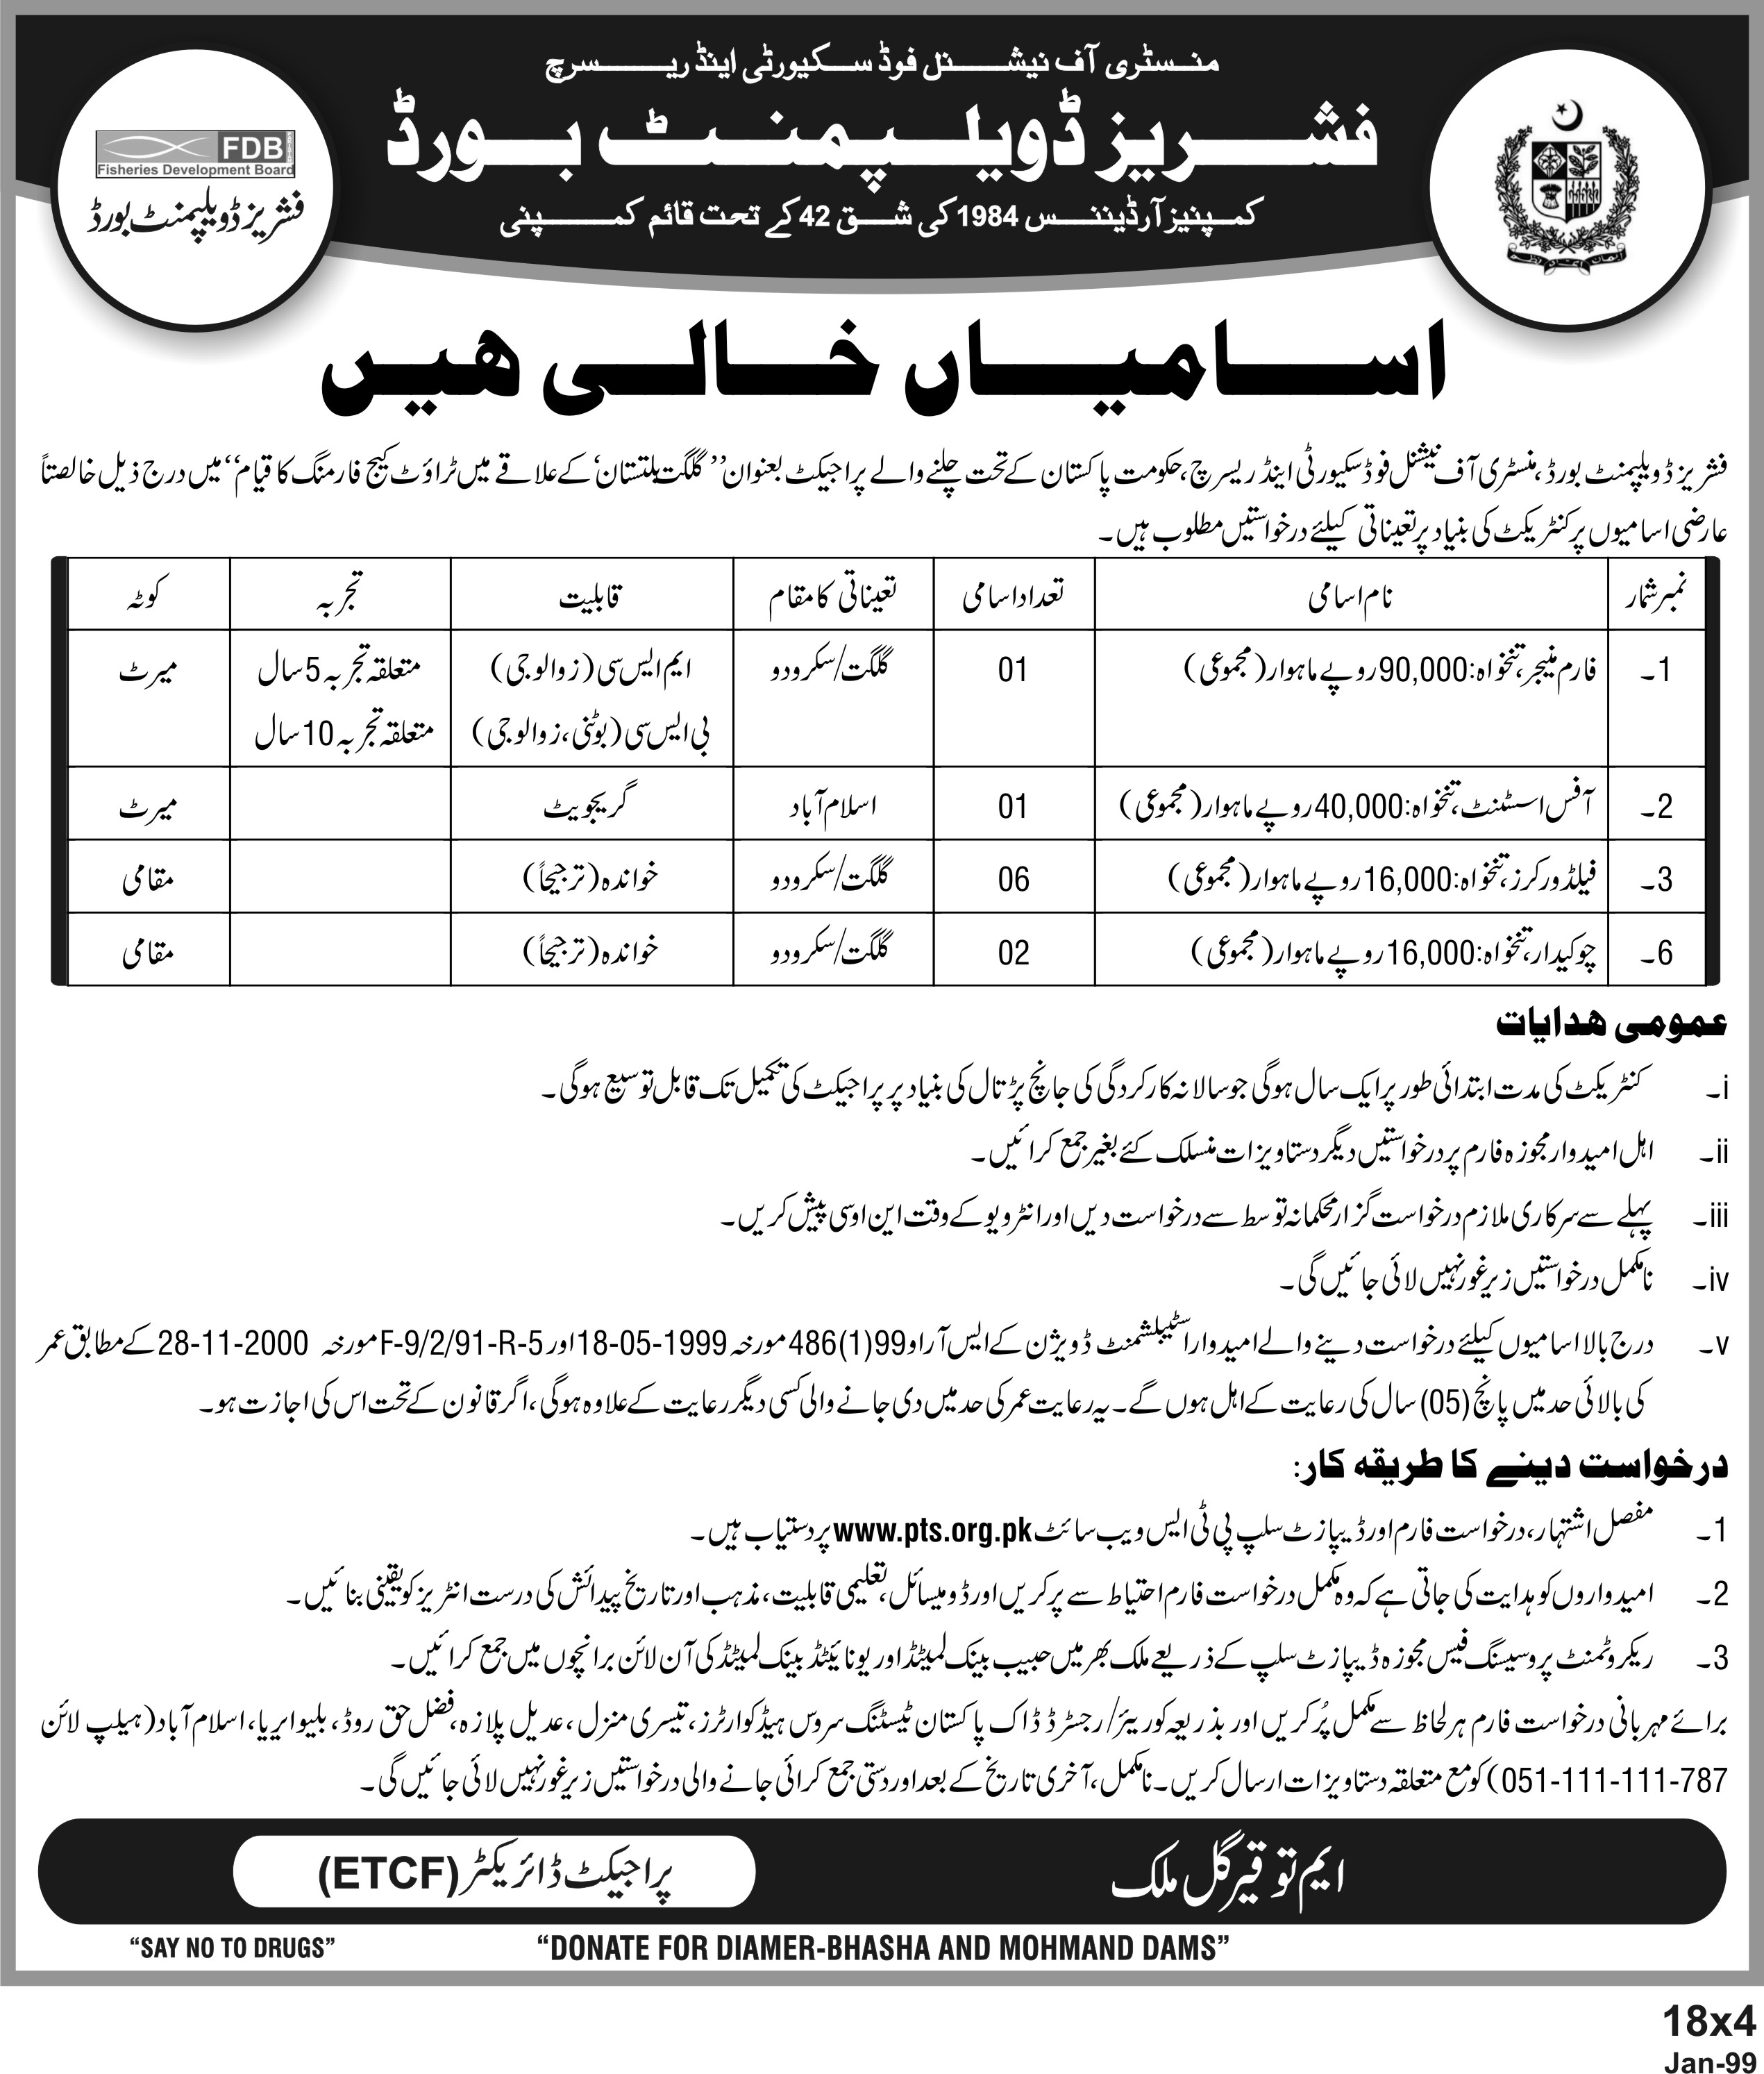 Fisheries Development Board PTS Jobs 2020 Application Form Roll No Slip